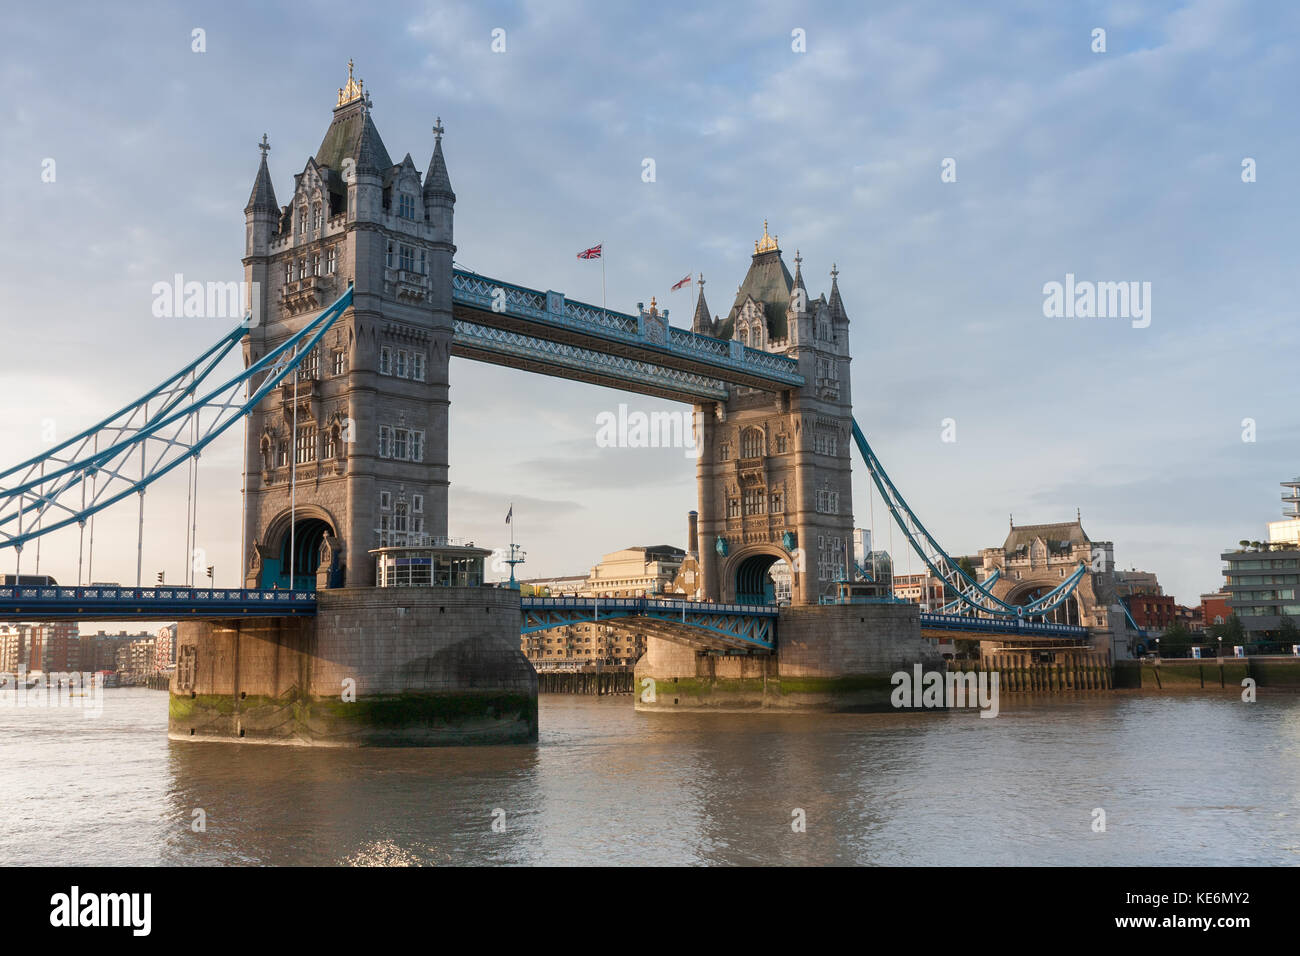 Tower bridge le matin, Londres, Angleterre. Photo Stock